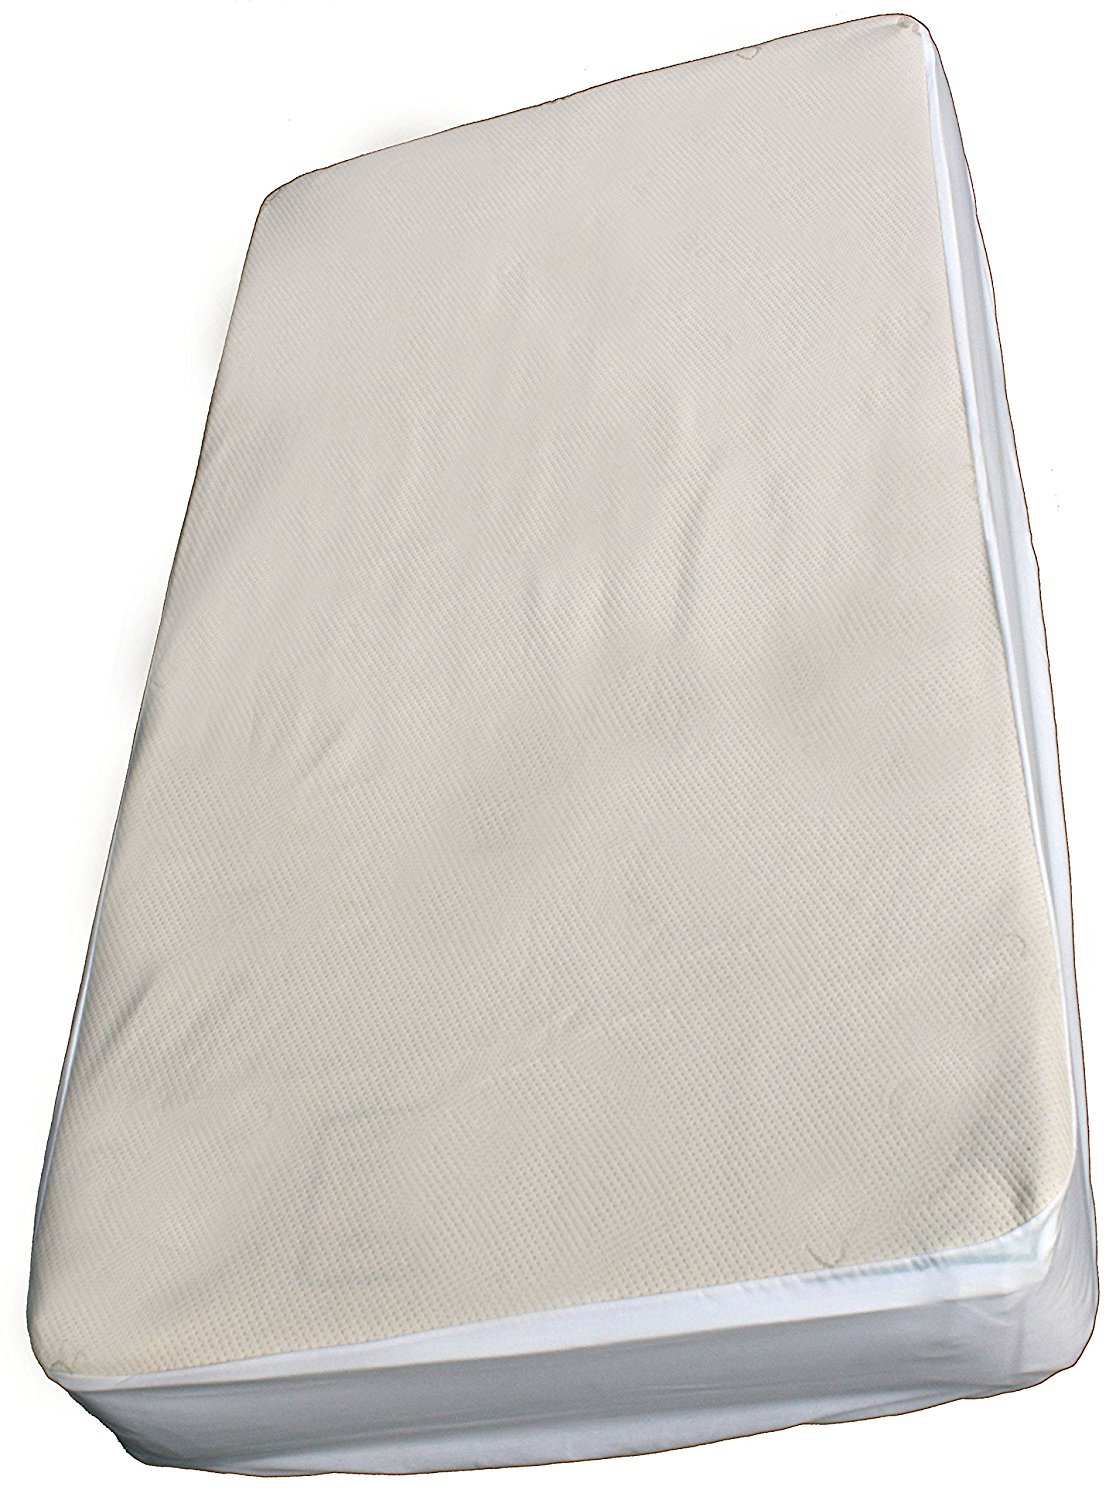 Fullsize Of Cotton Mattress Pad